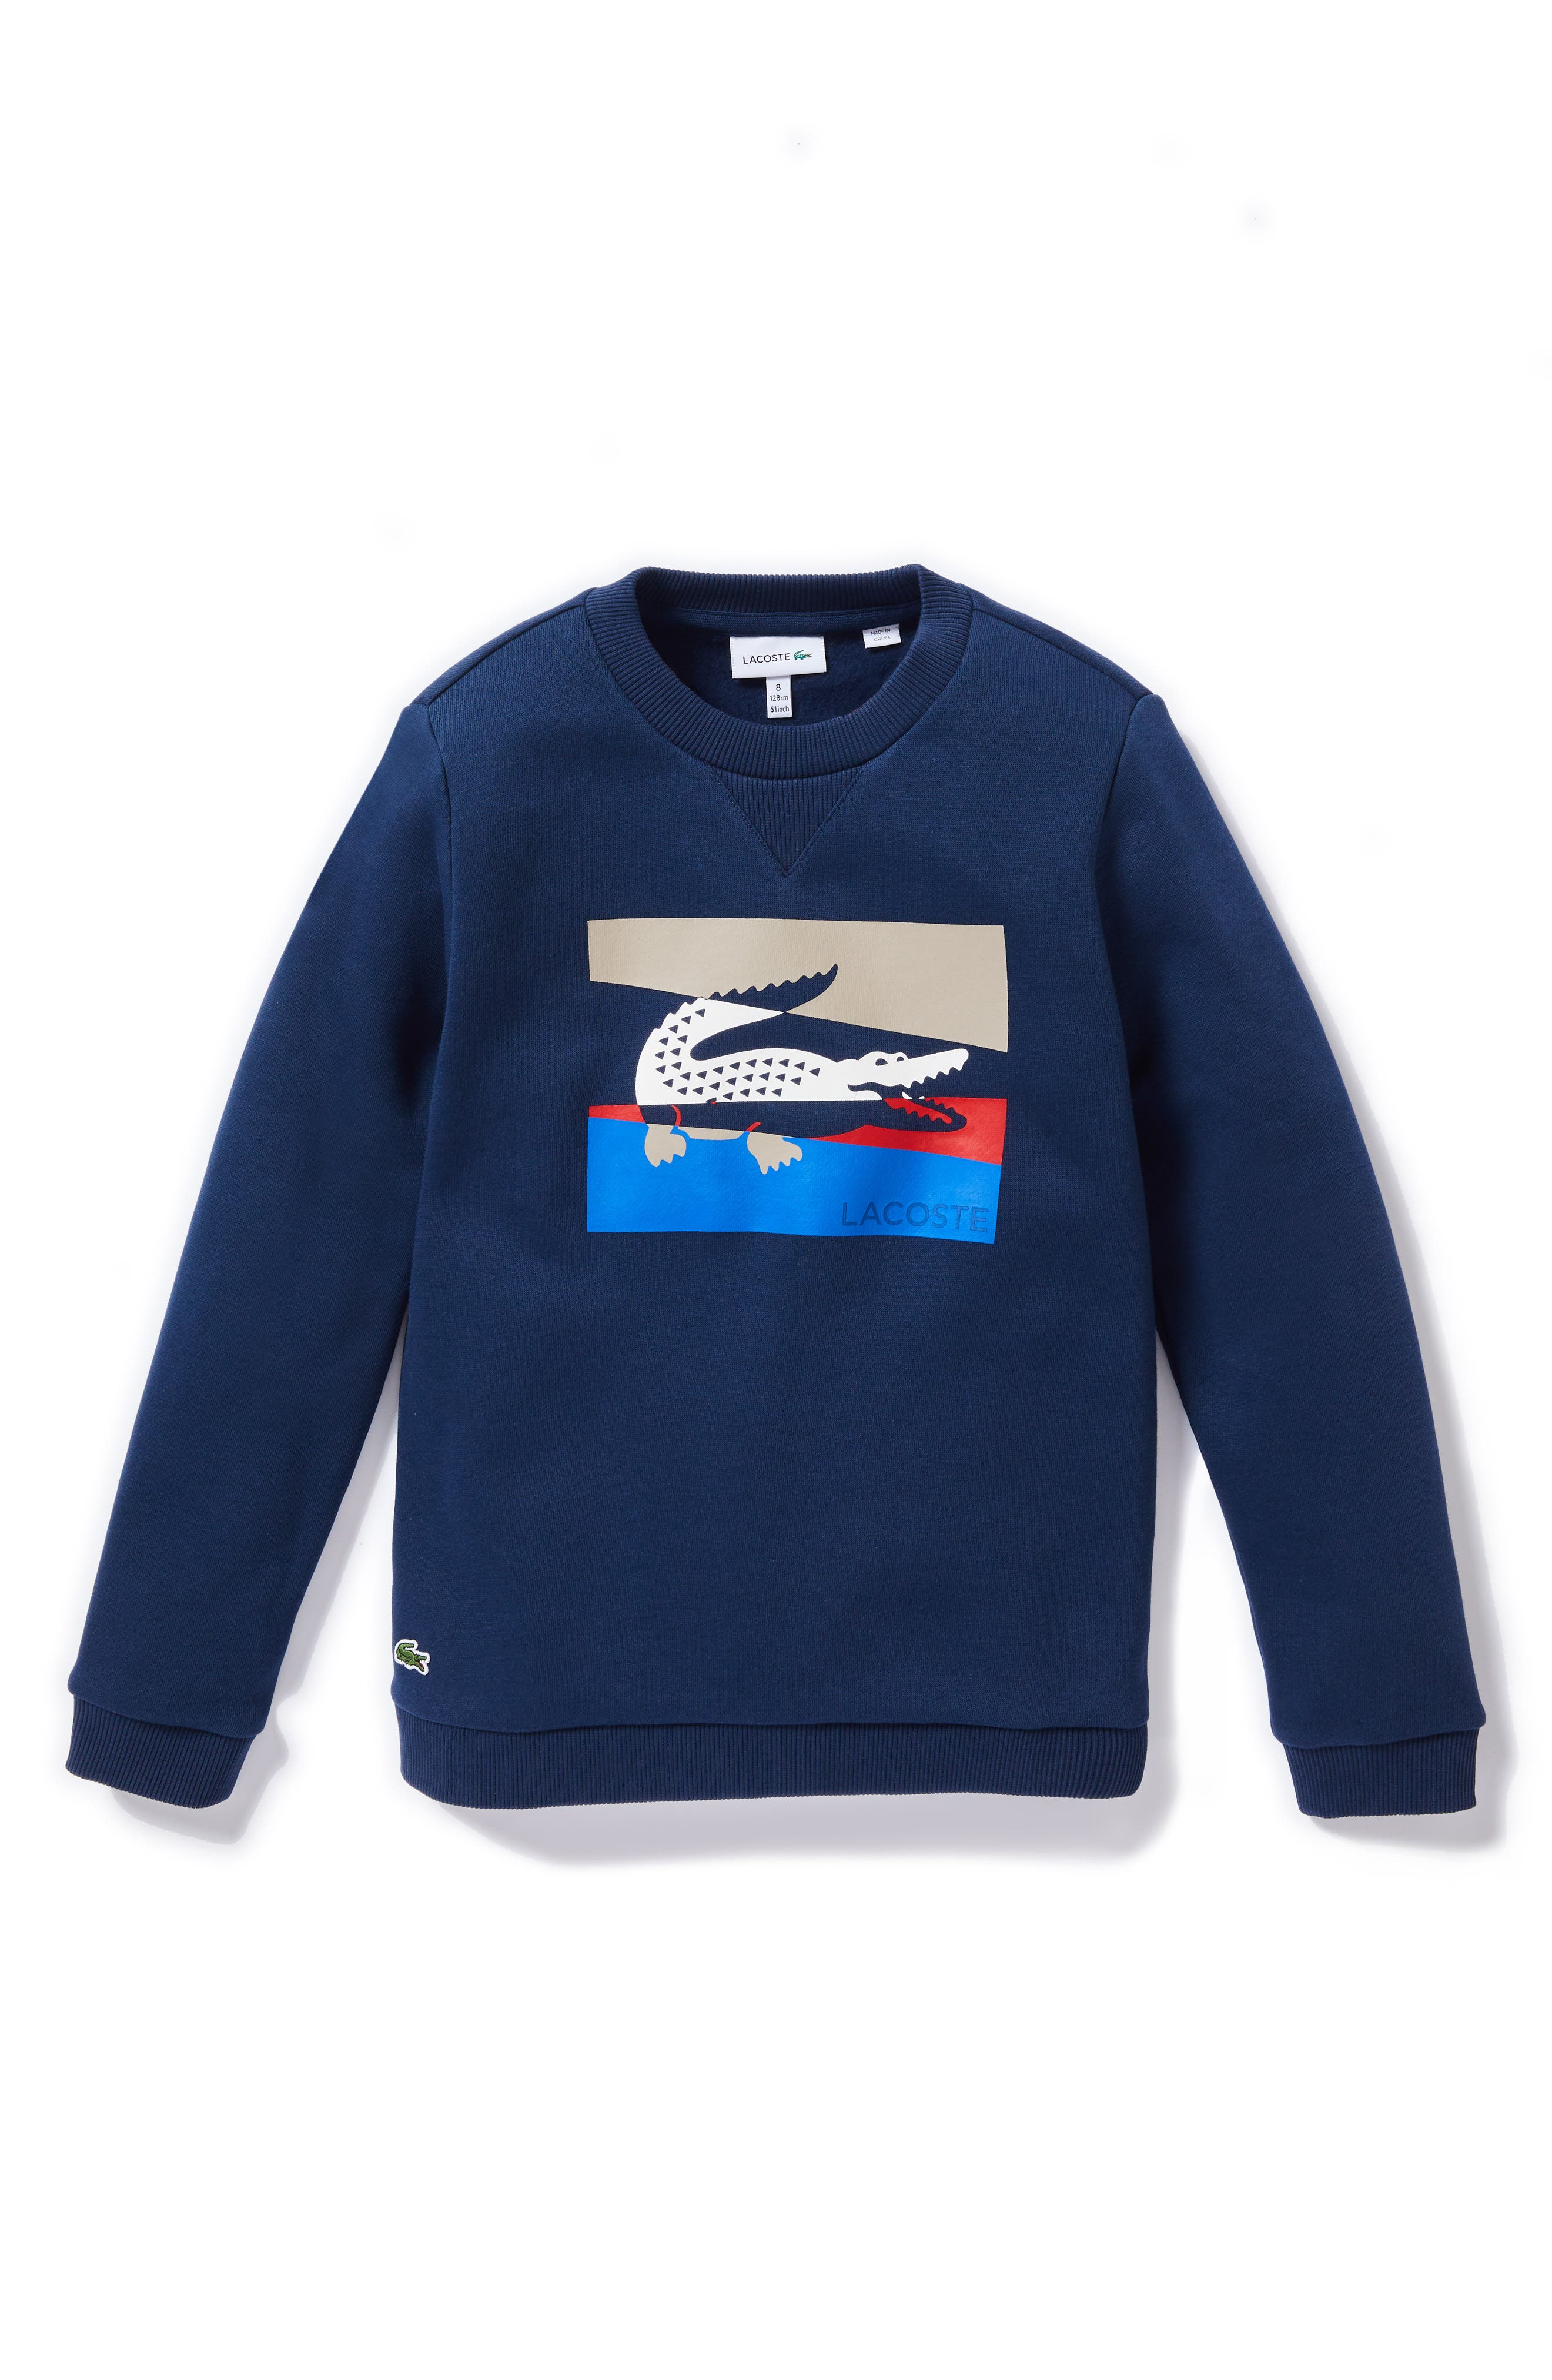 Multicolor Animation Sweatshirt,                             Main thumbnail 1, color,                             NAVY BLUE